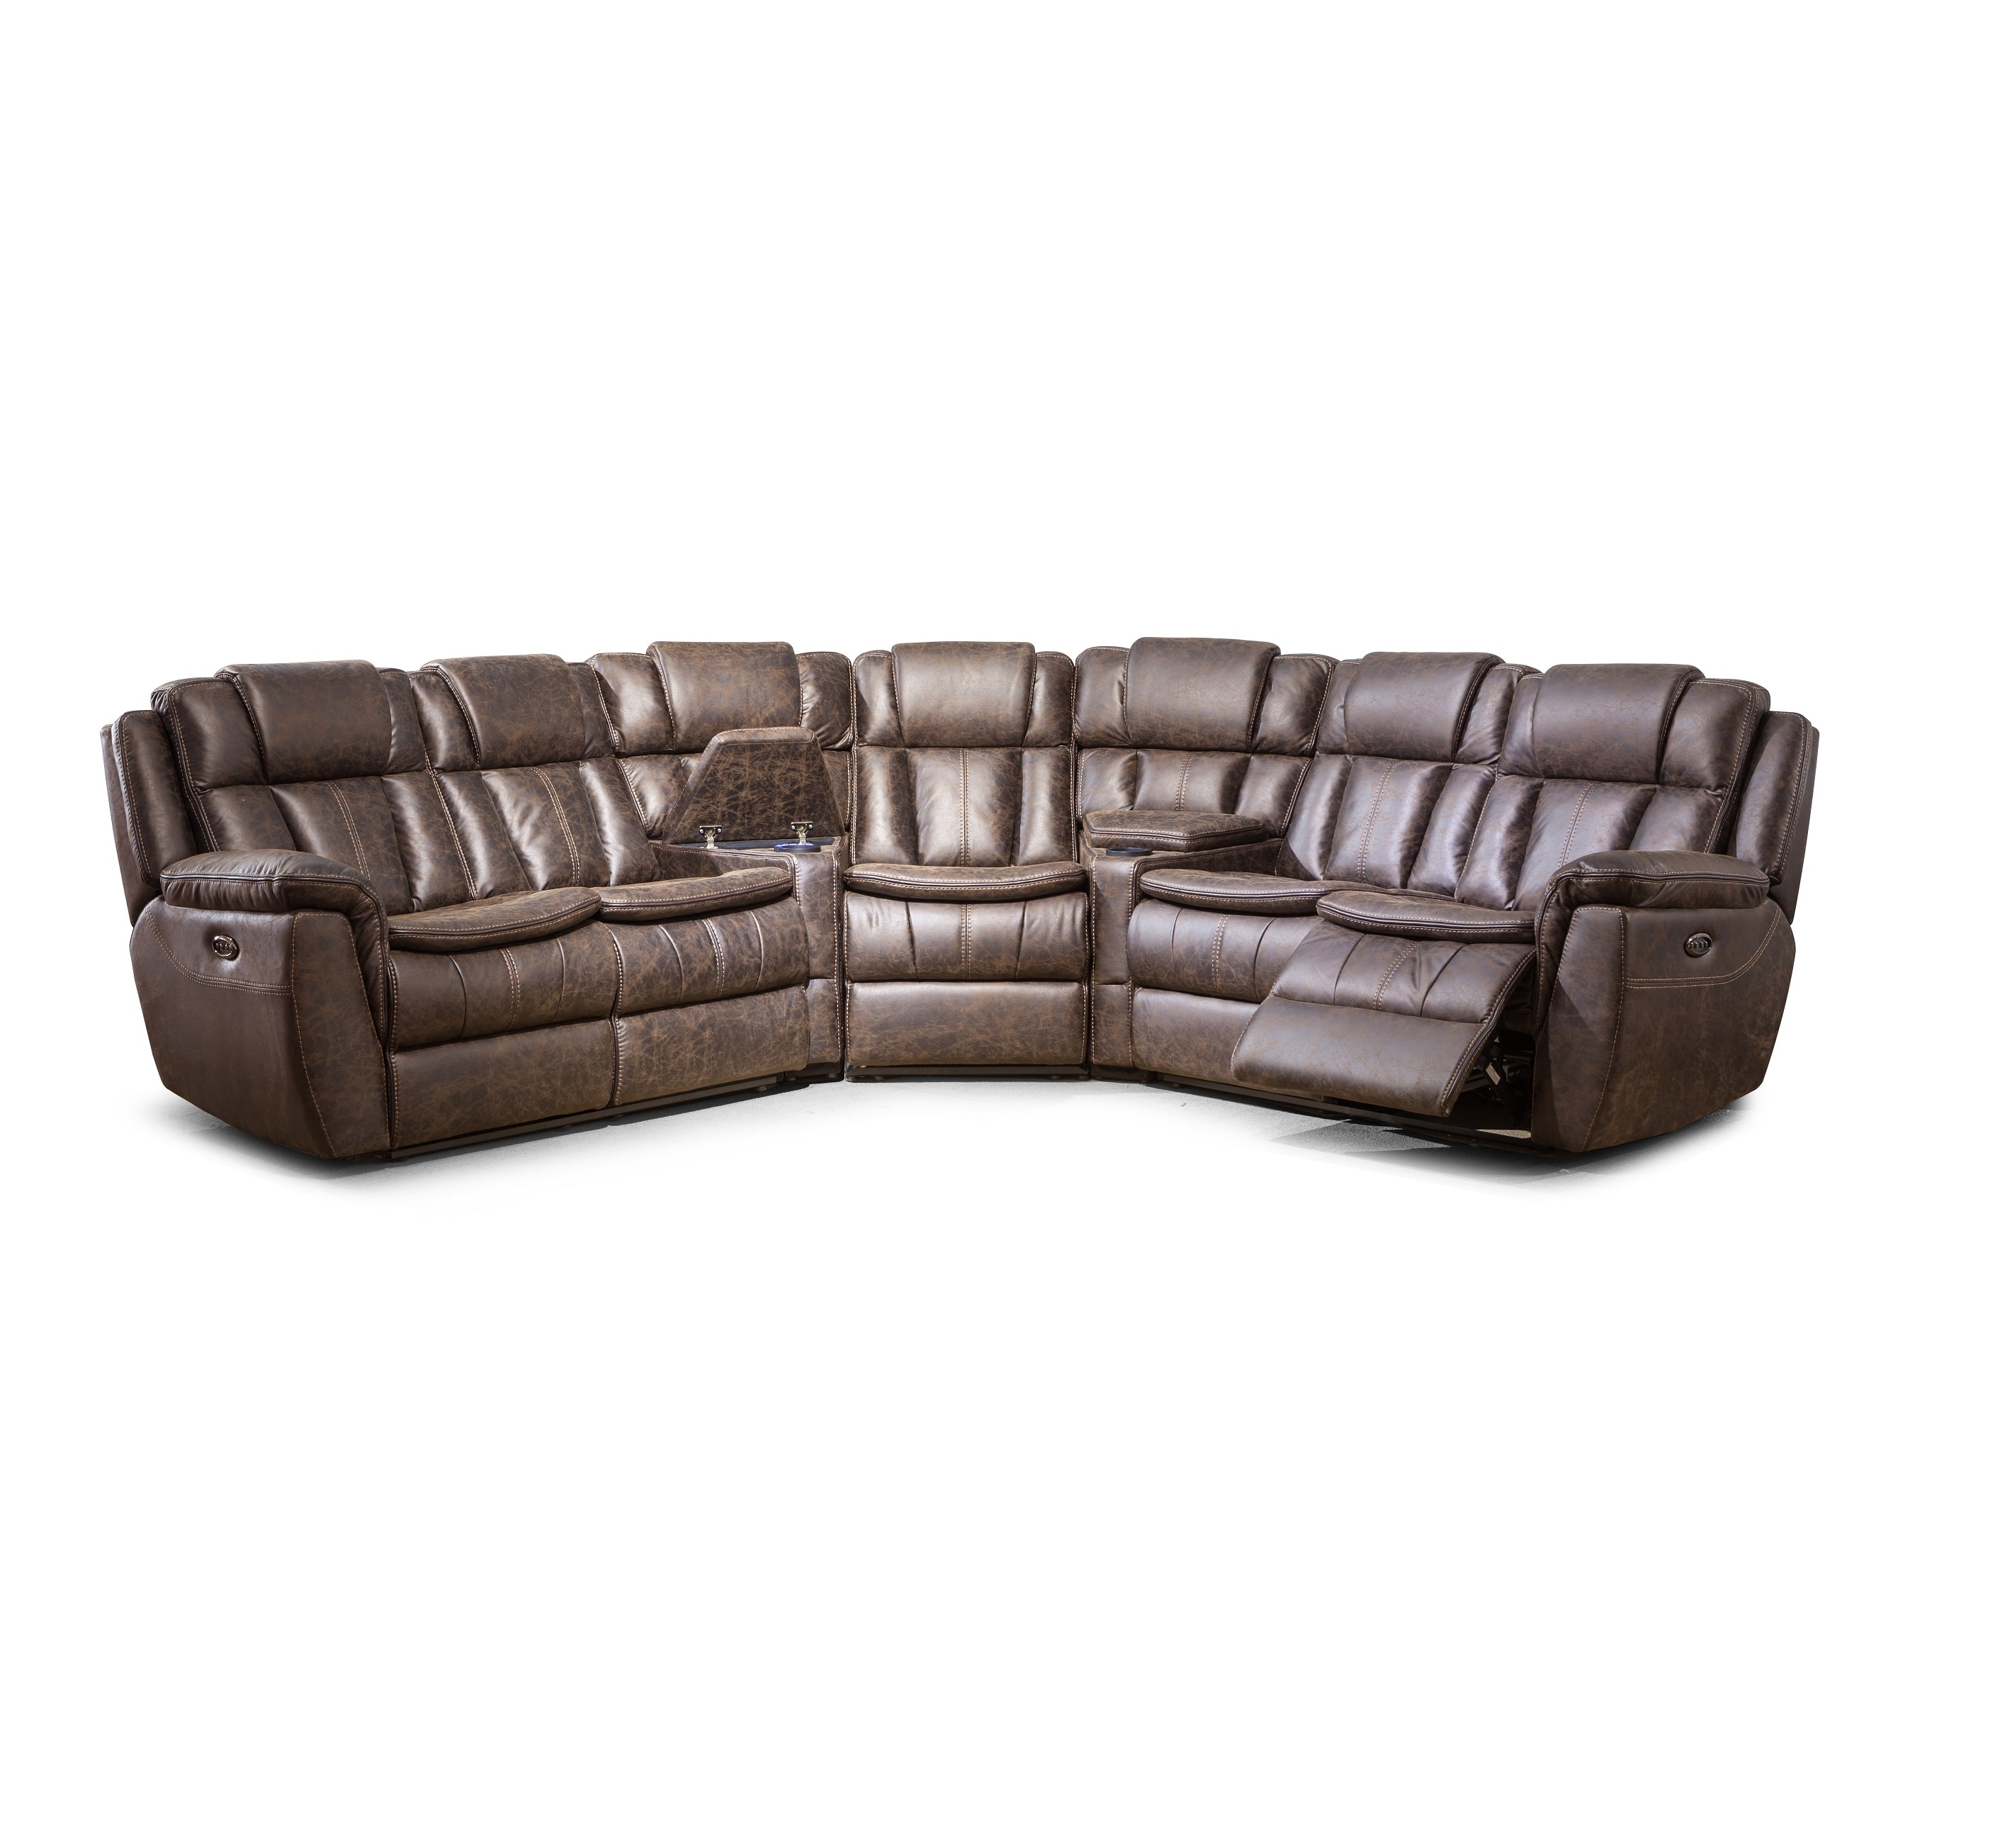 European style U shaped leather recliner sectional sofa